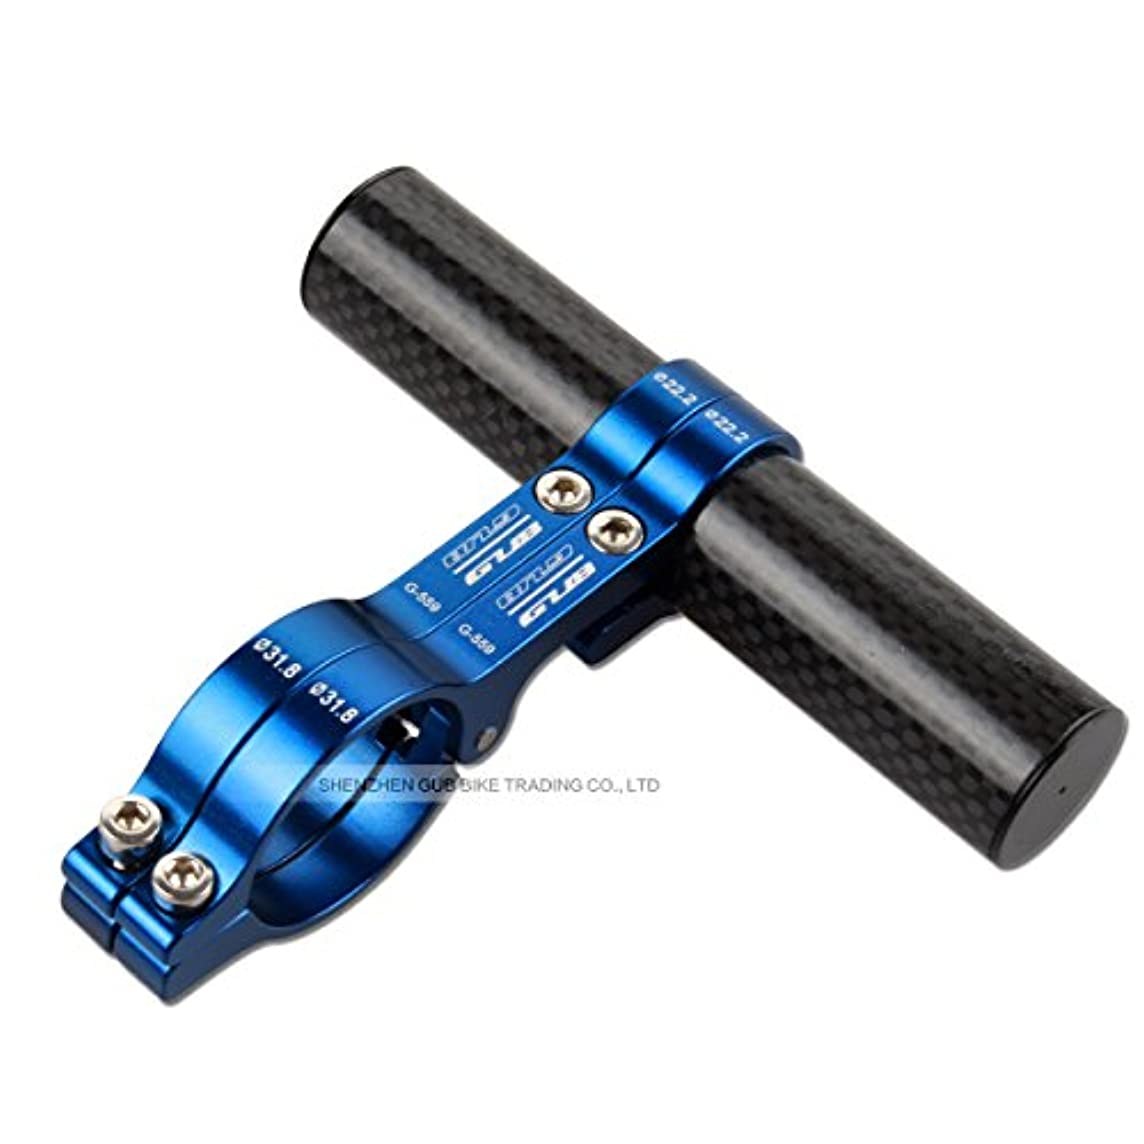 に対処する建築累積Gub 559 Carbon Fiber Bike Handlebar Extender For Headlight Flashlight Lamp Computer Holder Mount